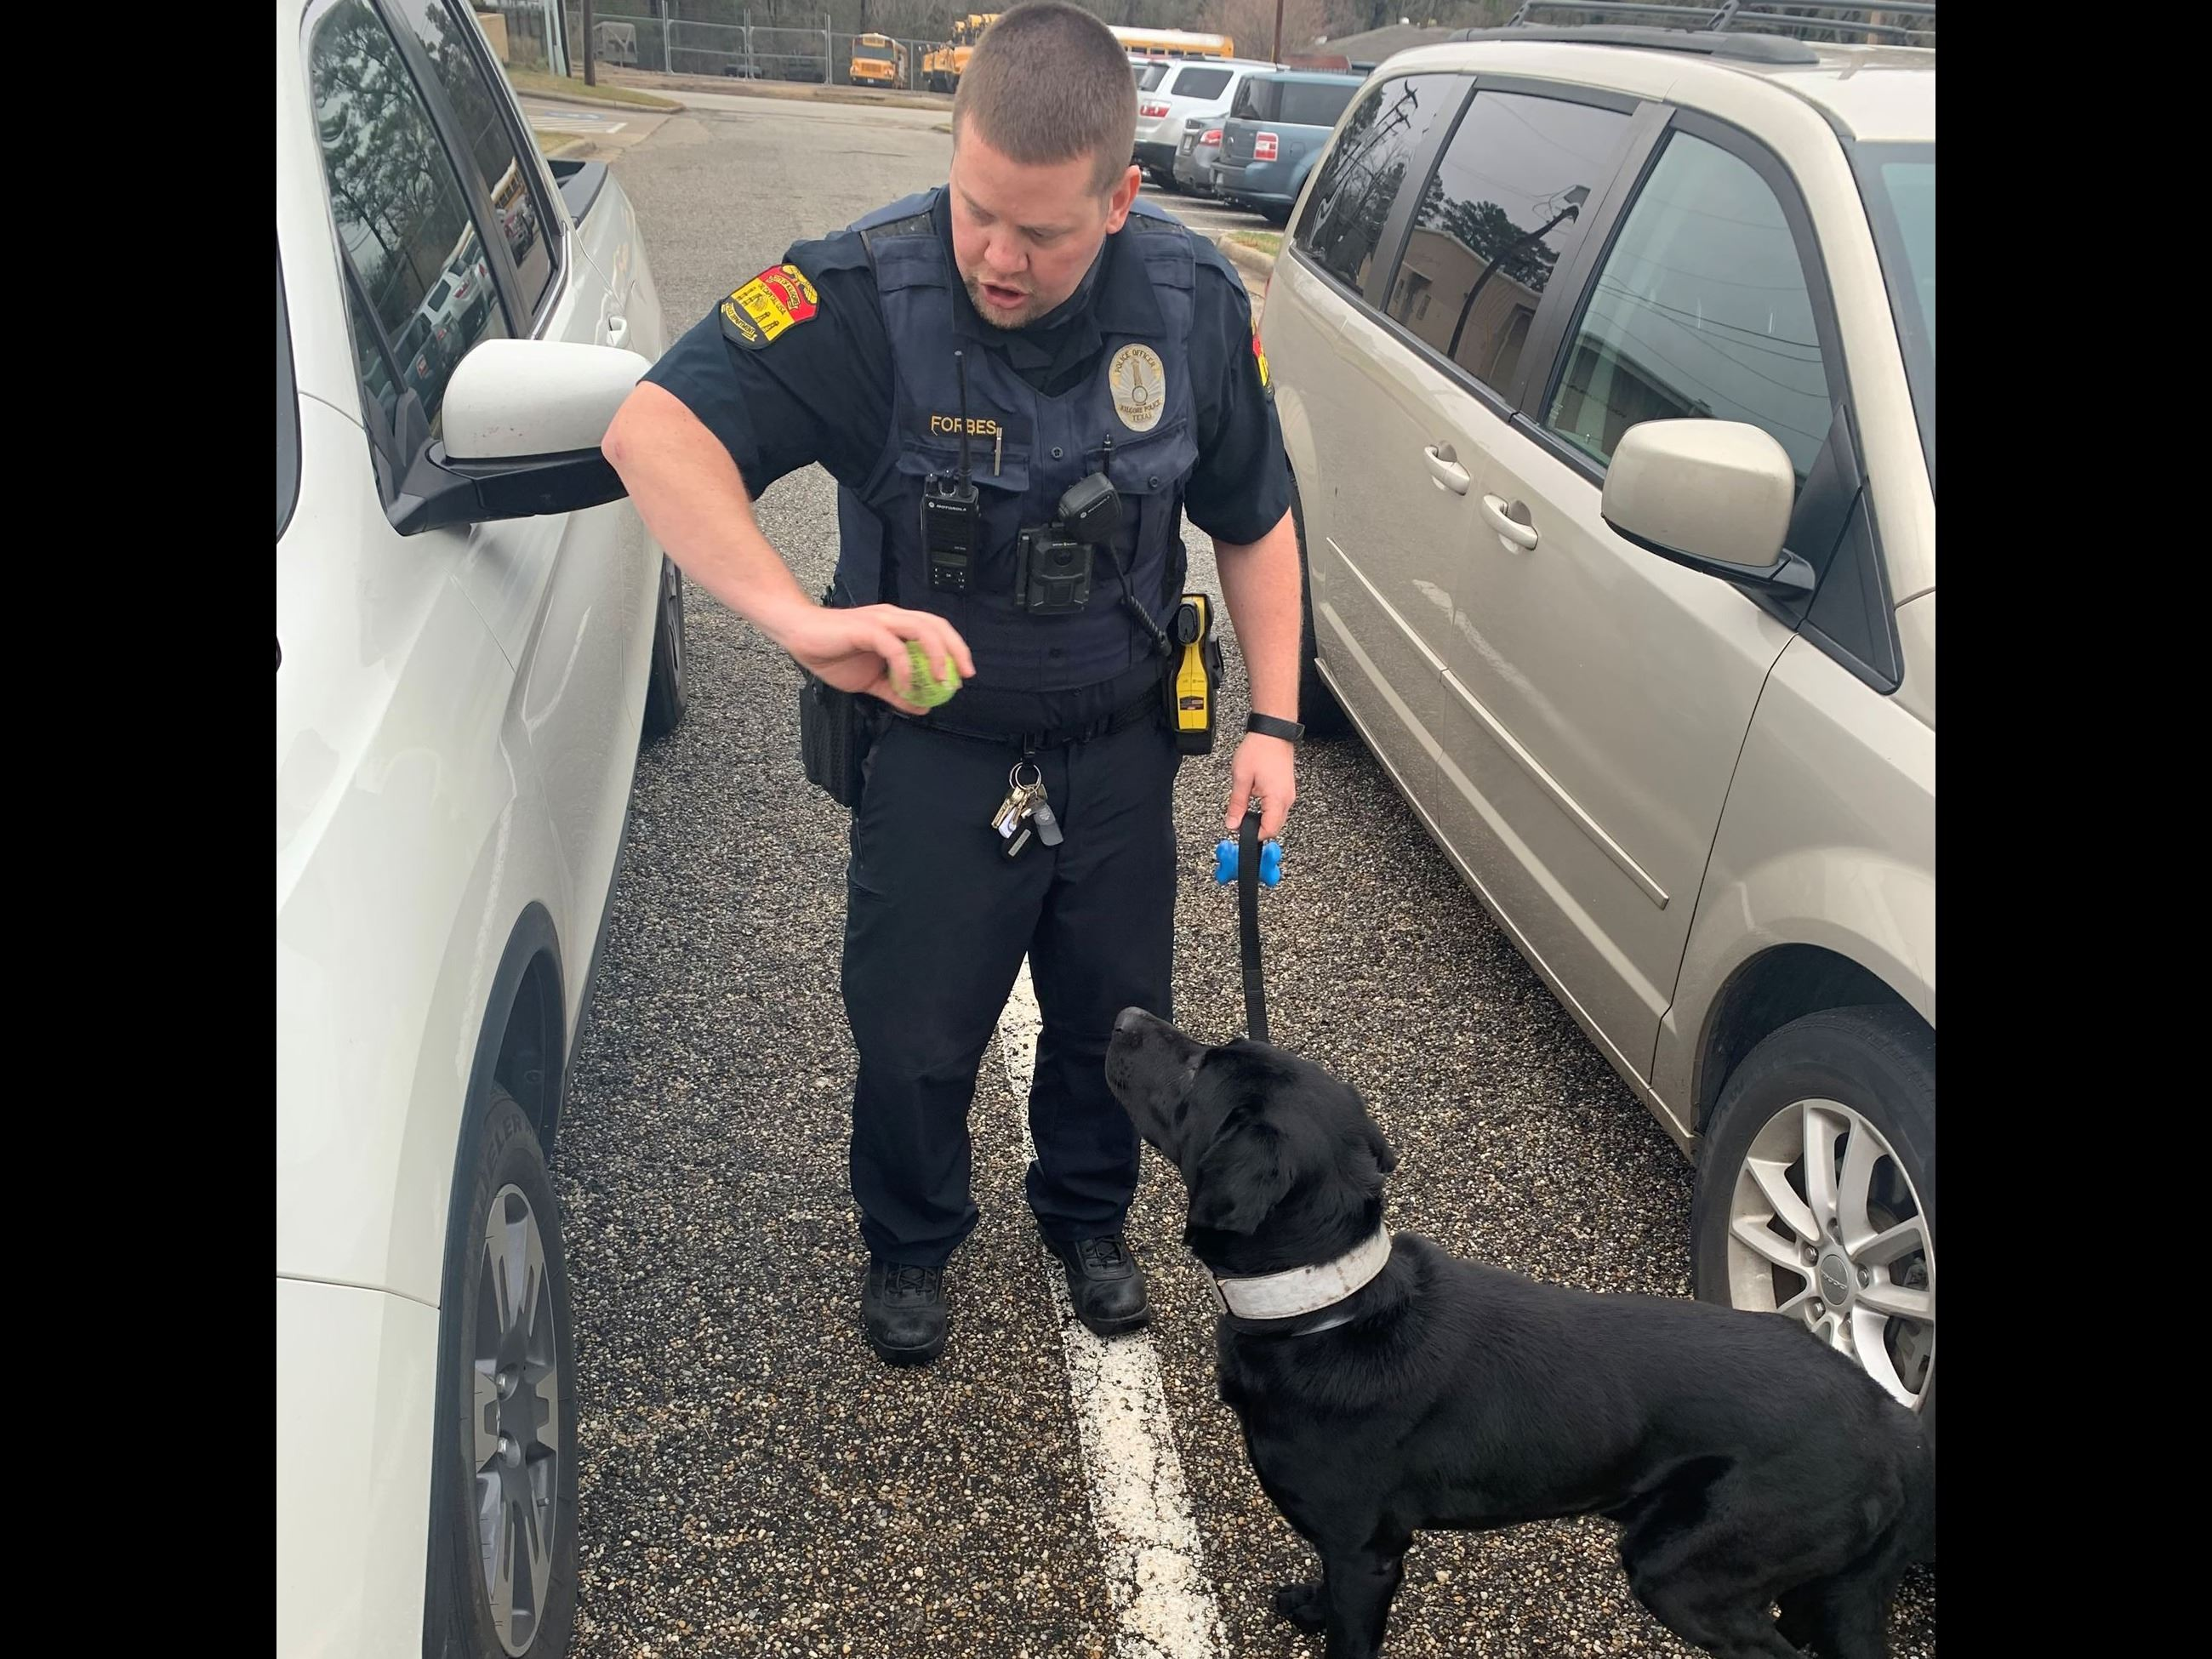 Officer Forbes and K9 Ruger vehicle sniff